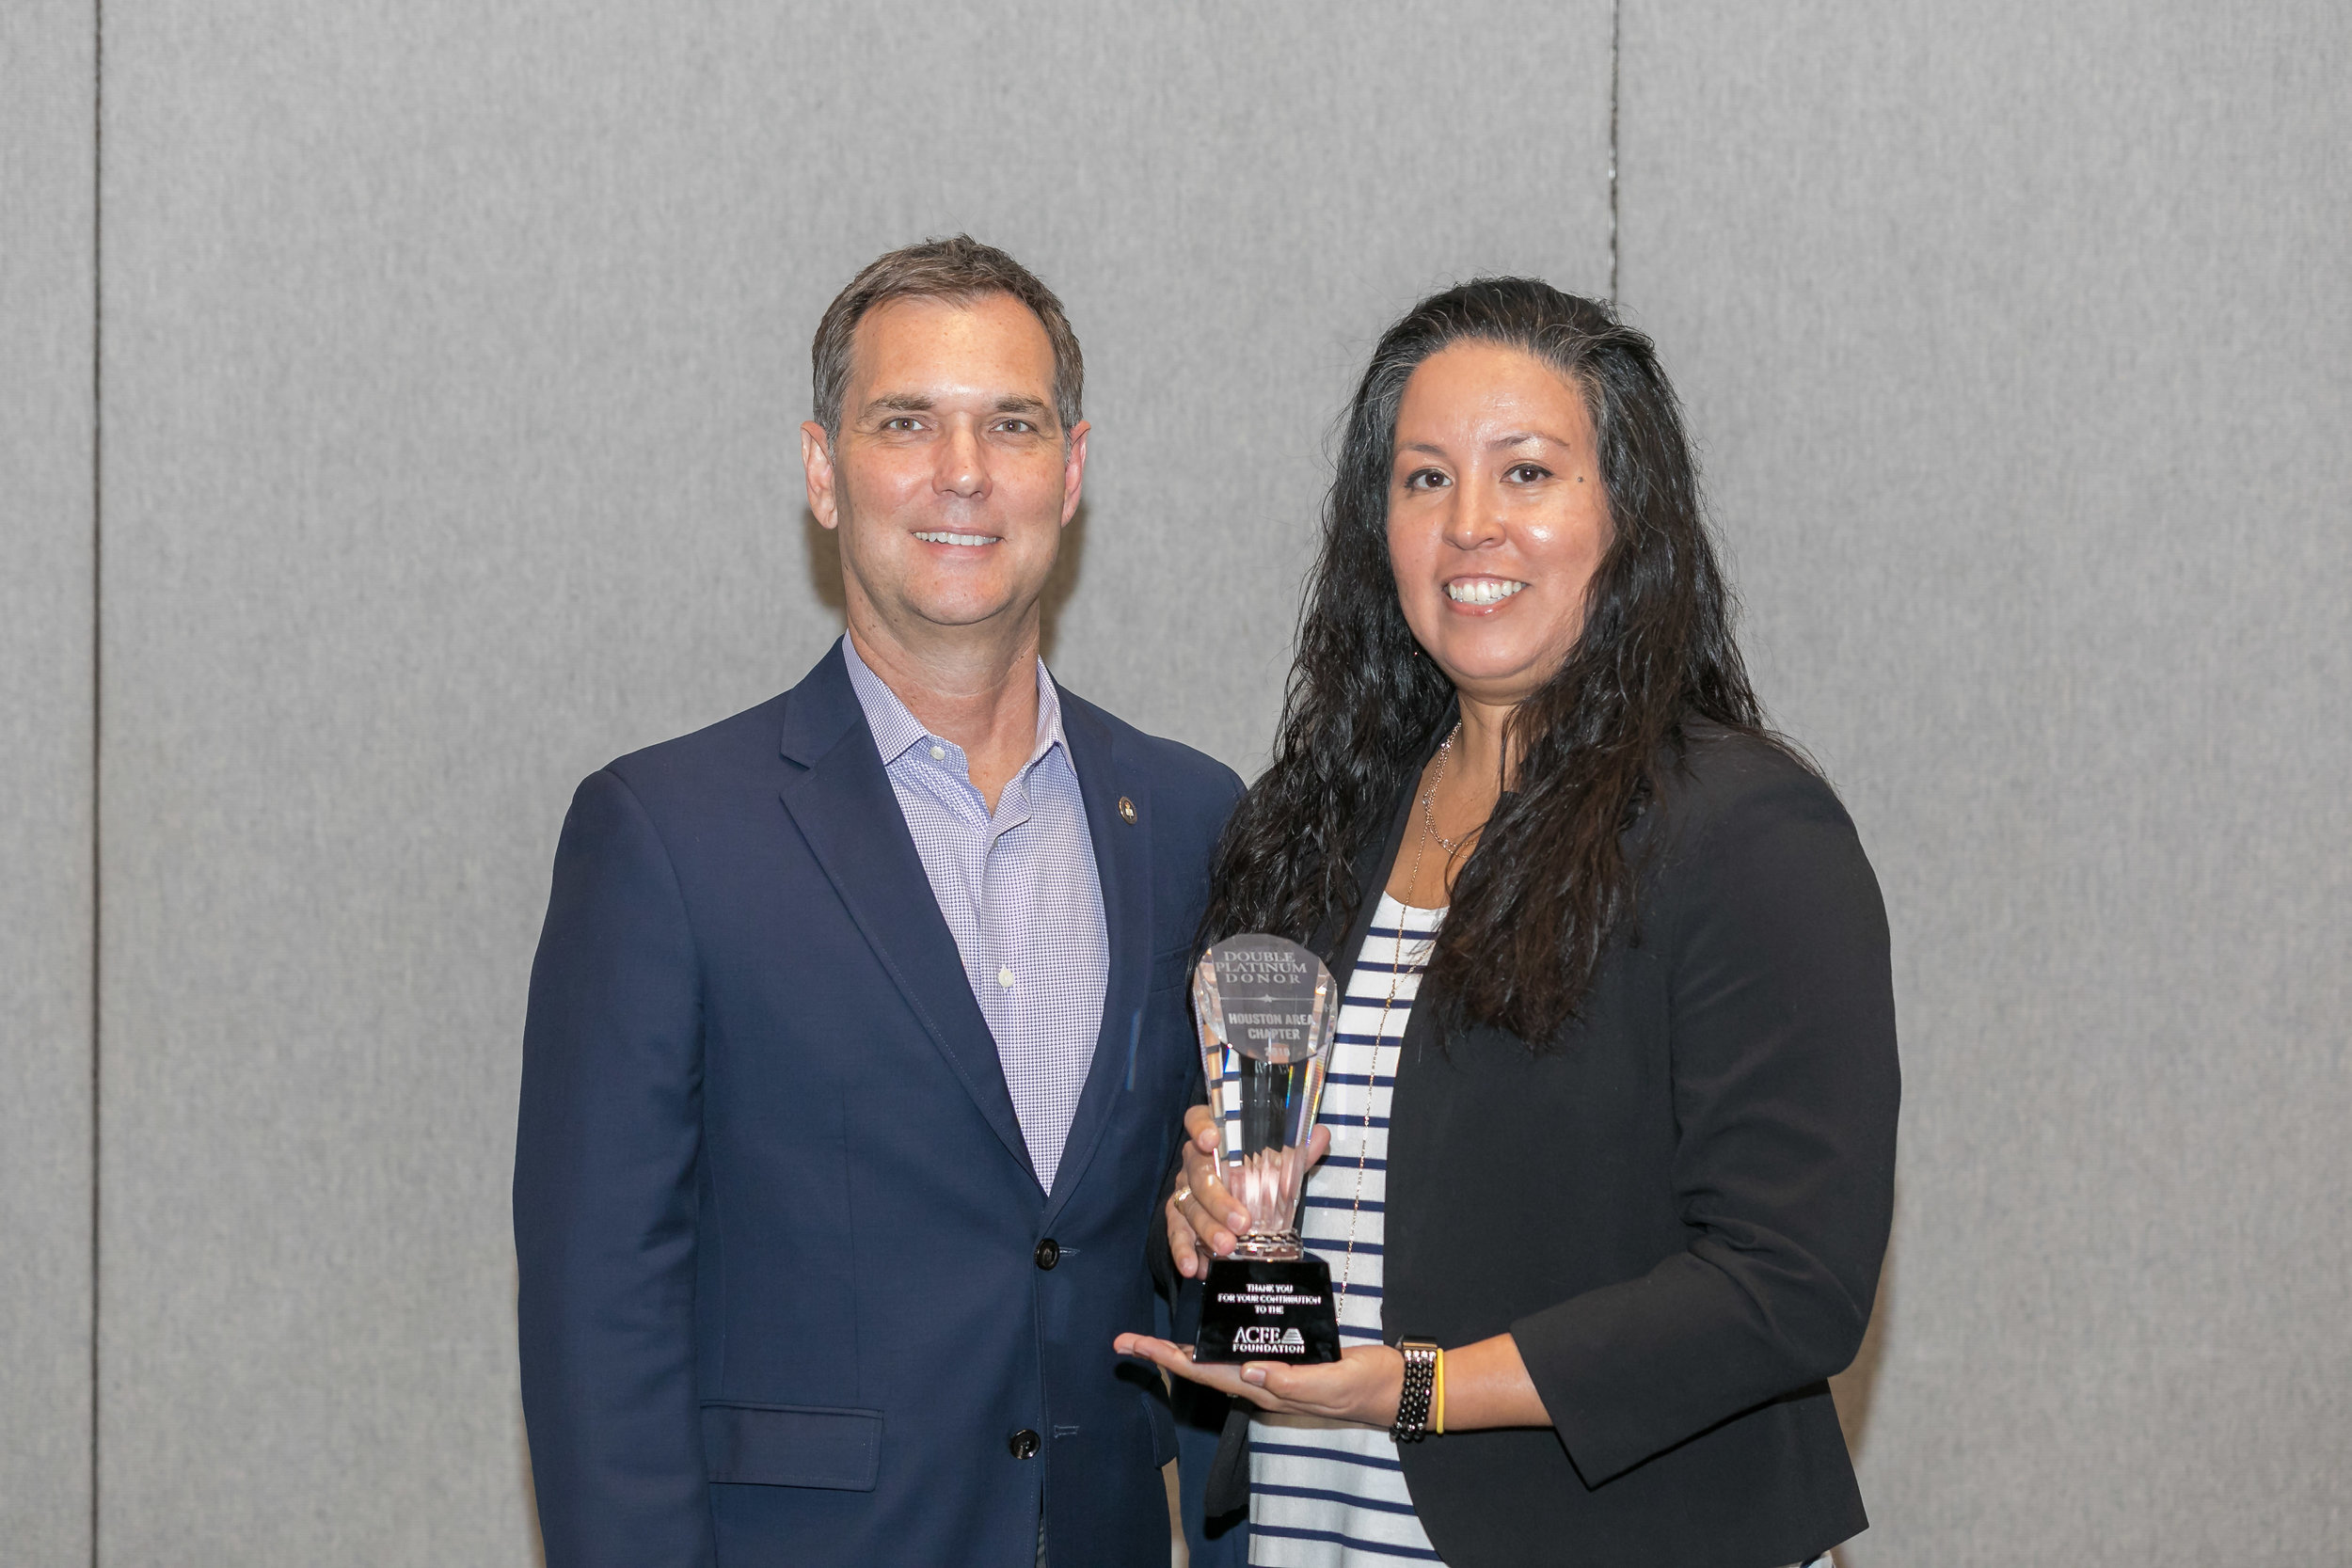 ACFE President Bruce Dorris awarding the Foundation Award to Chrysti Ziegler, Houston Area Chapter President.